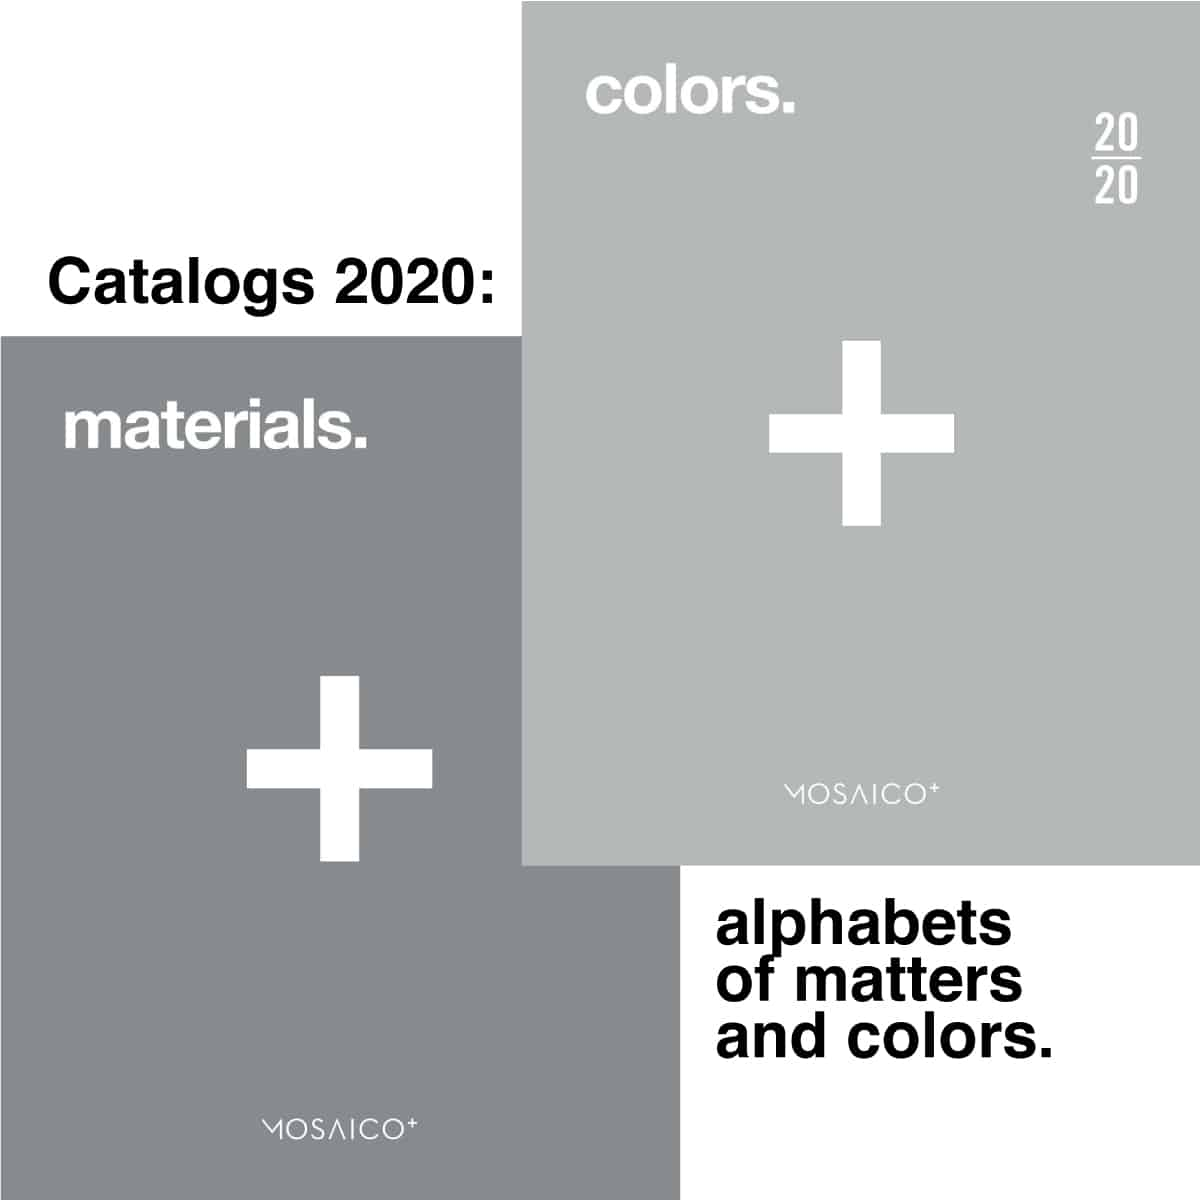 New catalogs 2020